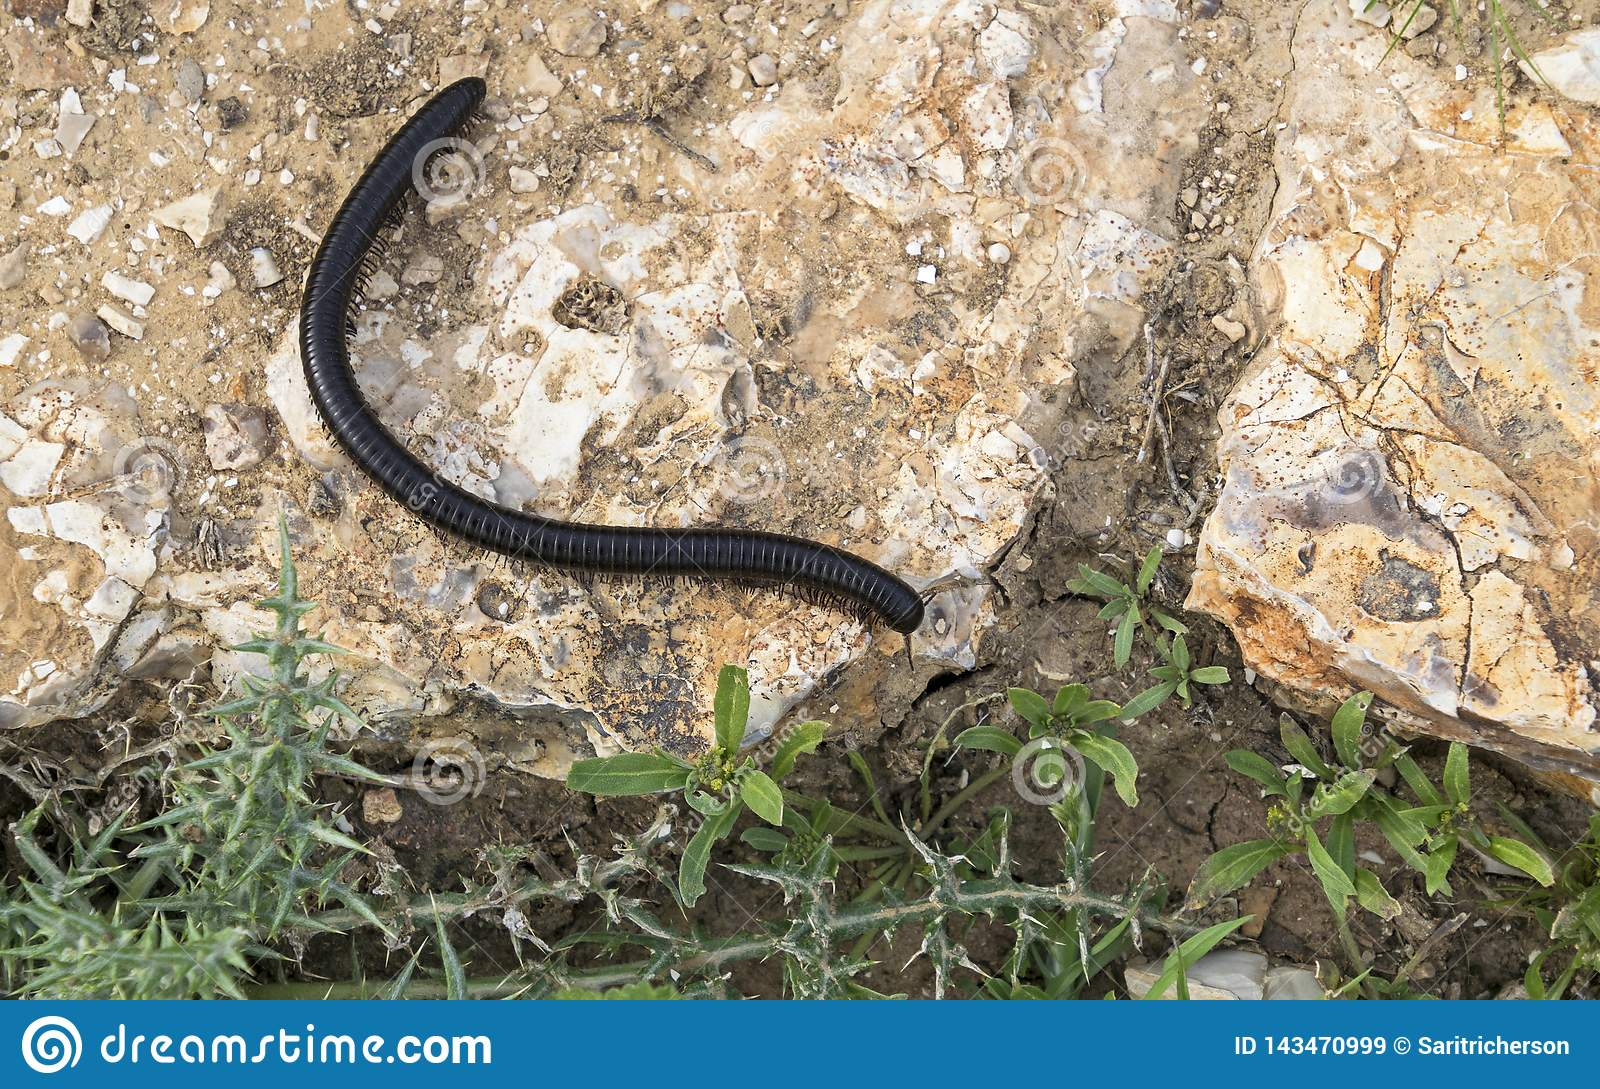 Giant Black Millipede Crawling on a Rock in the Desert